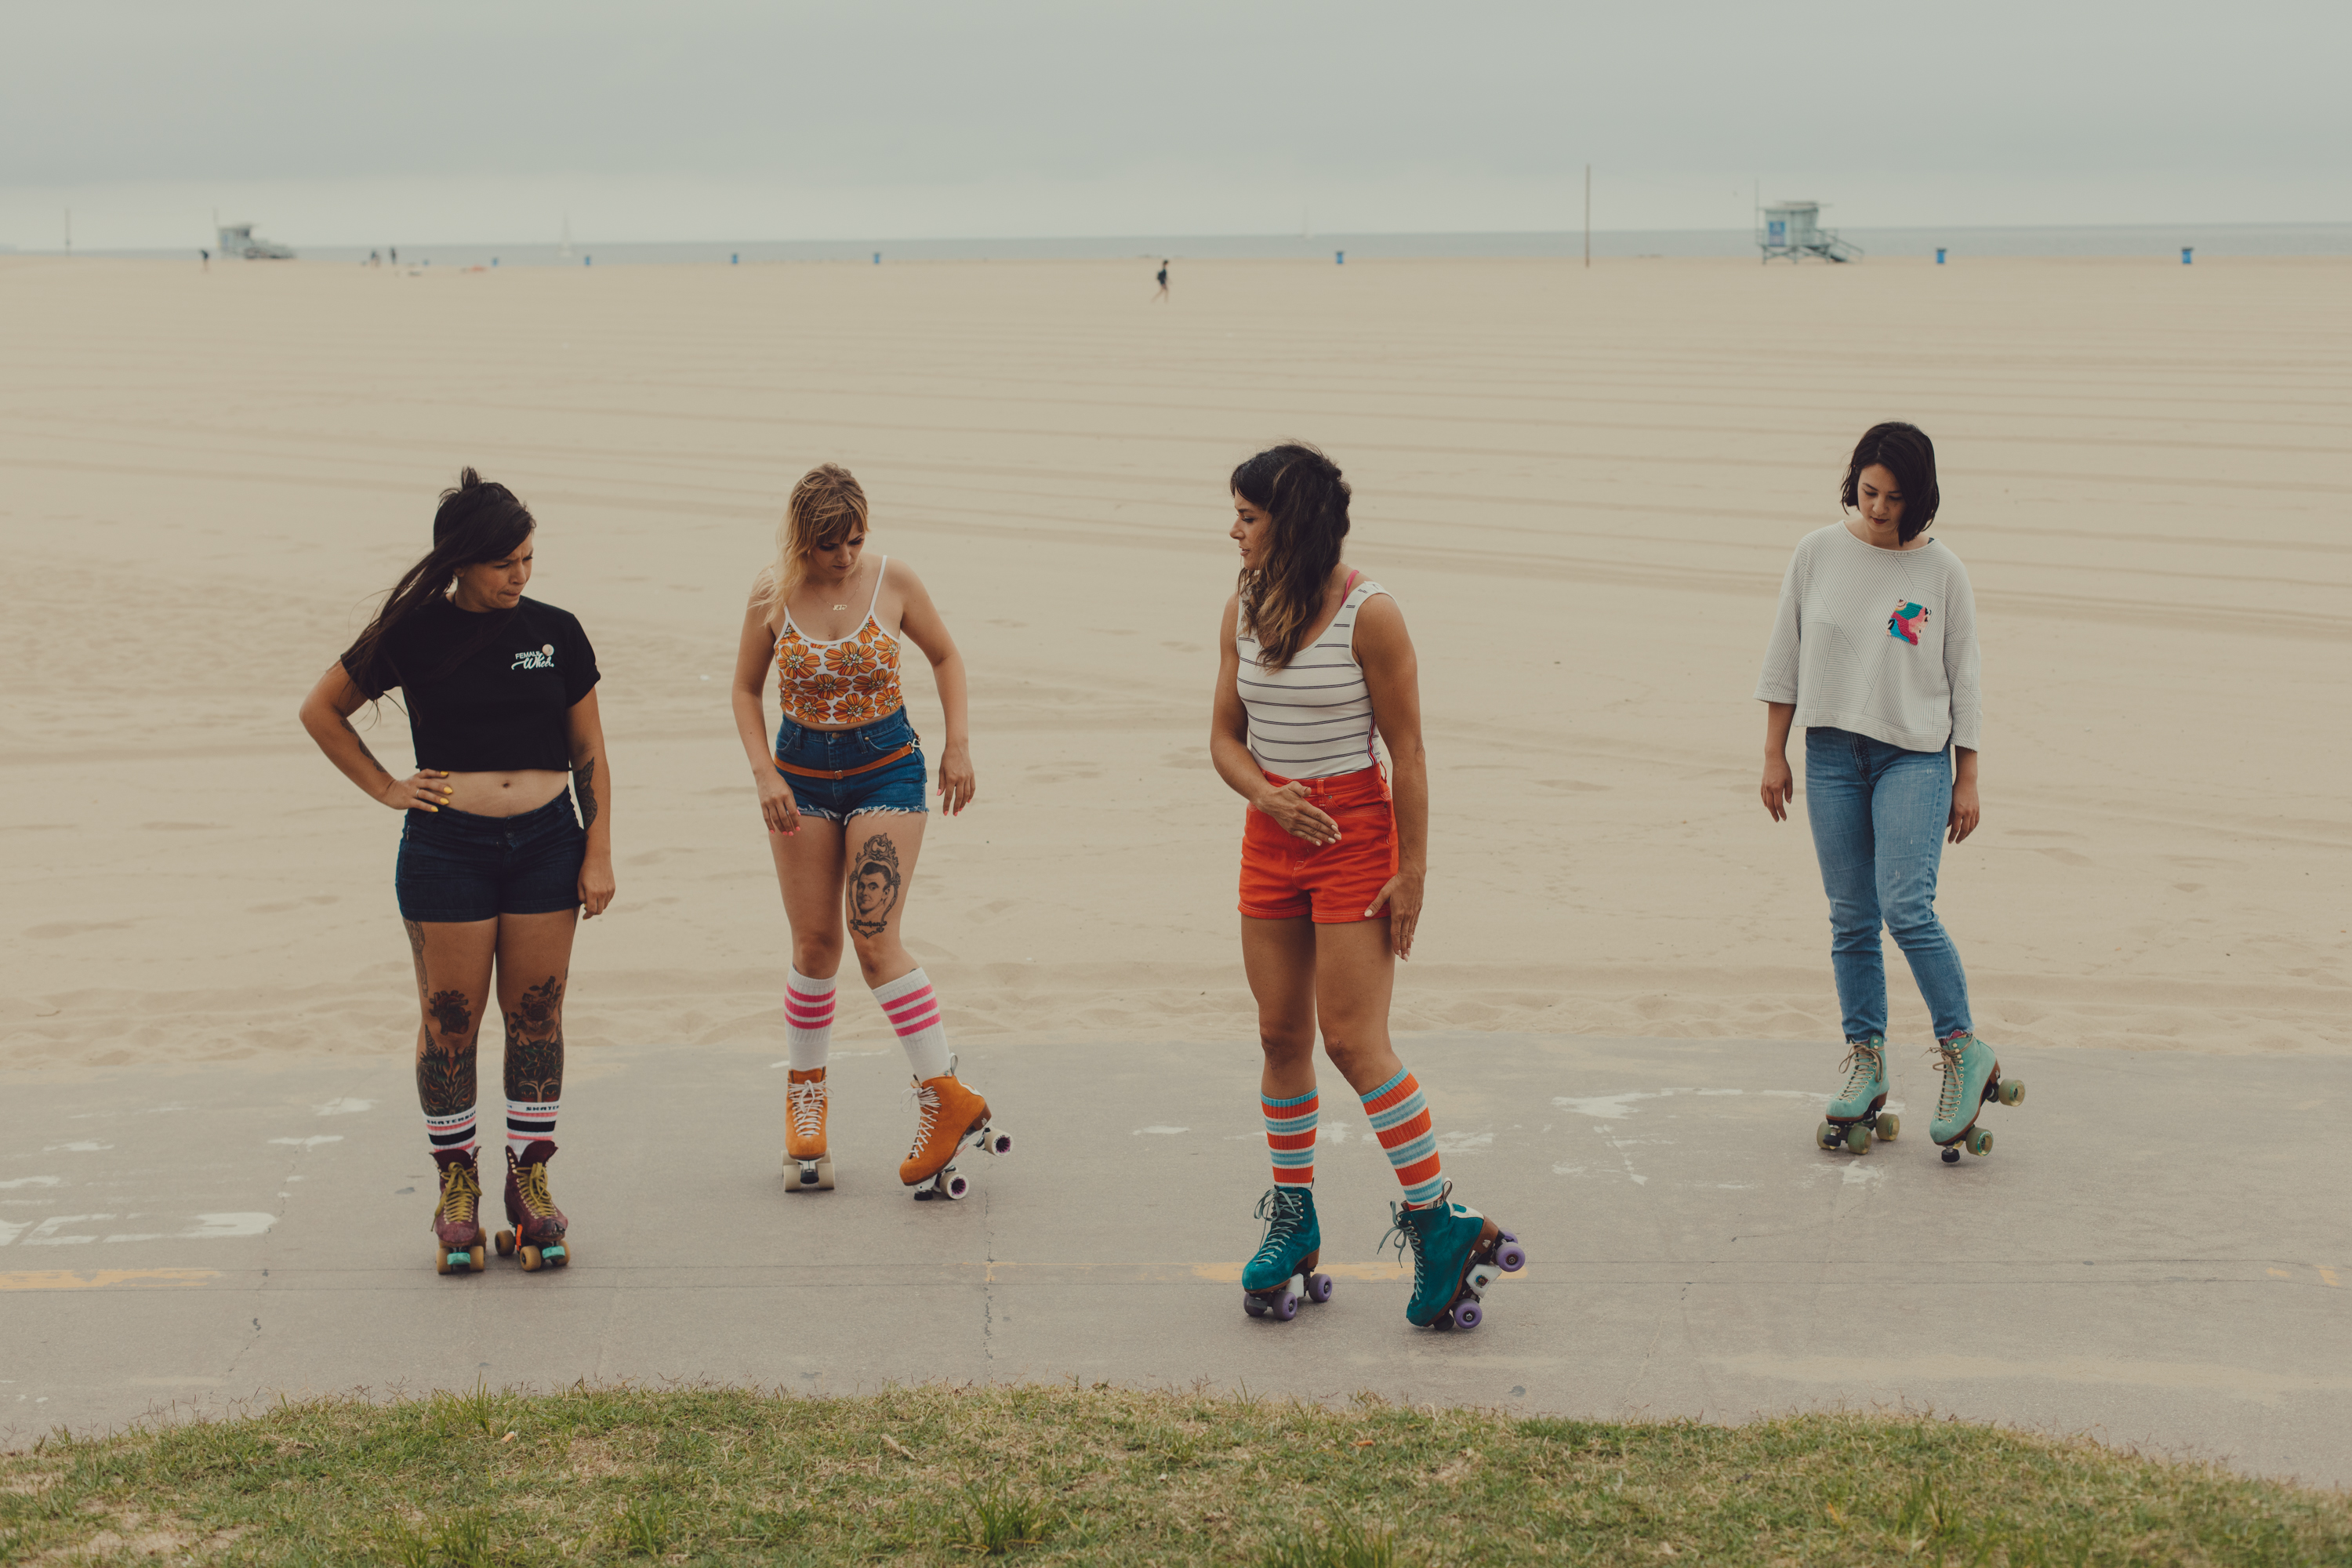 8b43cbaa665 I Cruised LA with the Badass Moxi Roller Skating Girl Gang - VICE